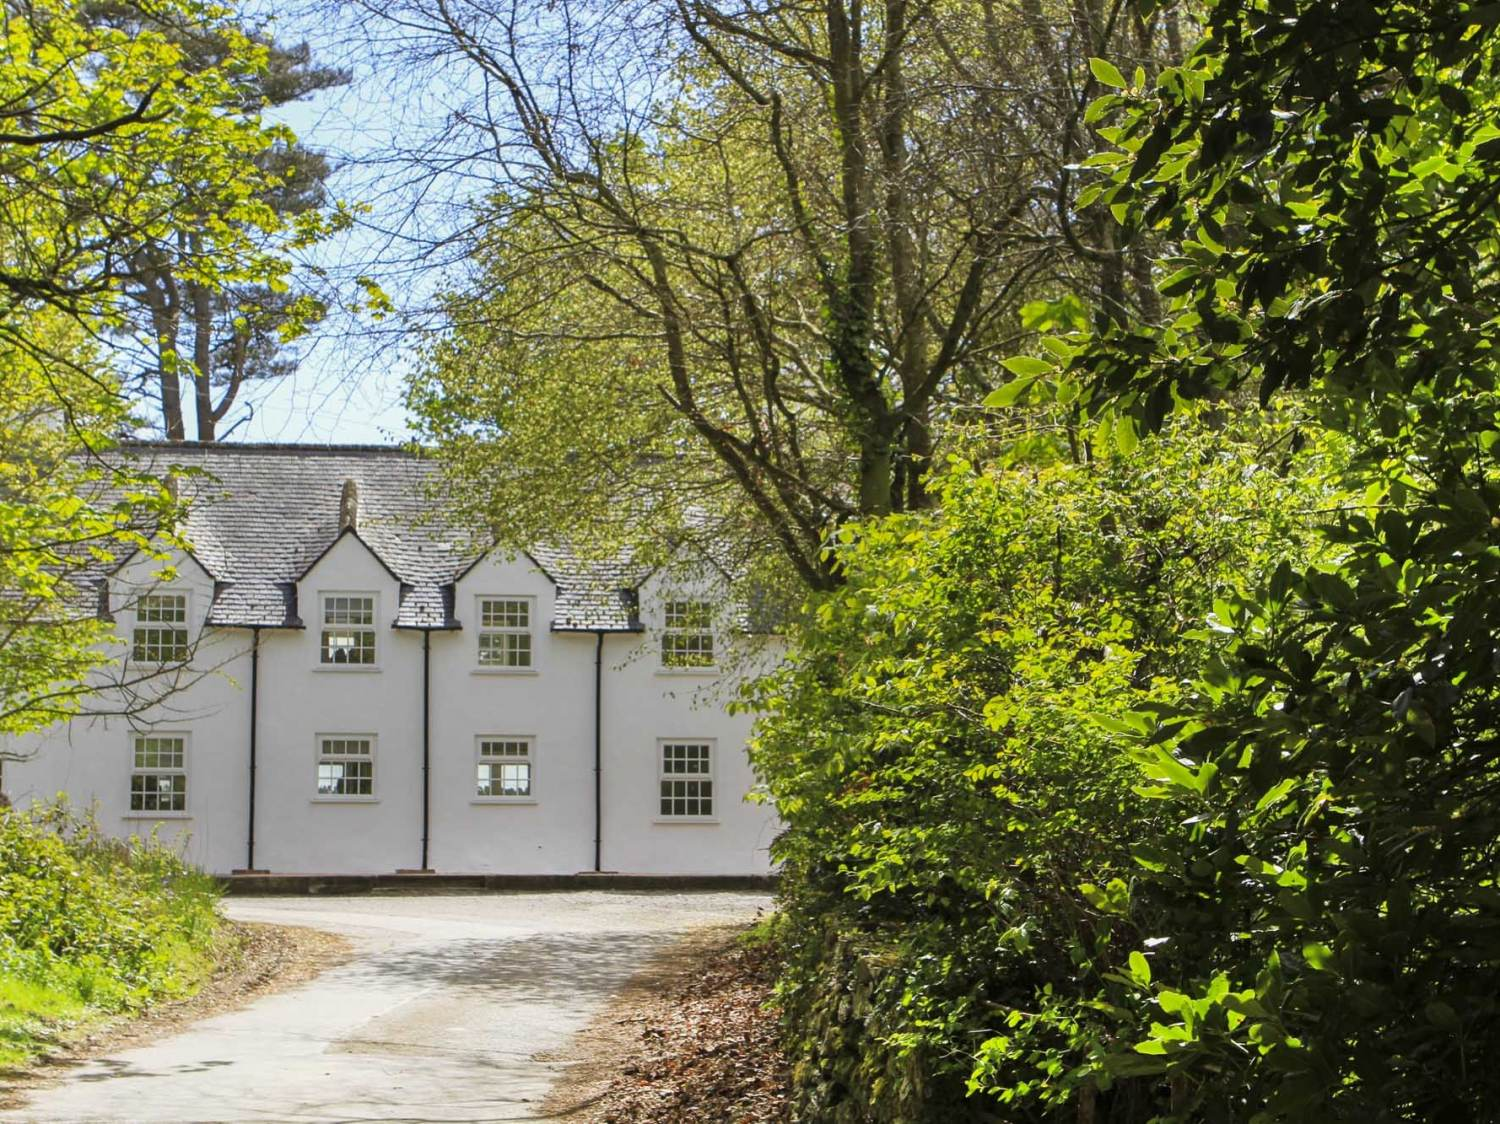 Garden Cottage - Rhoscolyn - Anglesey - 1008835 - photo 1